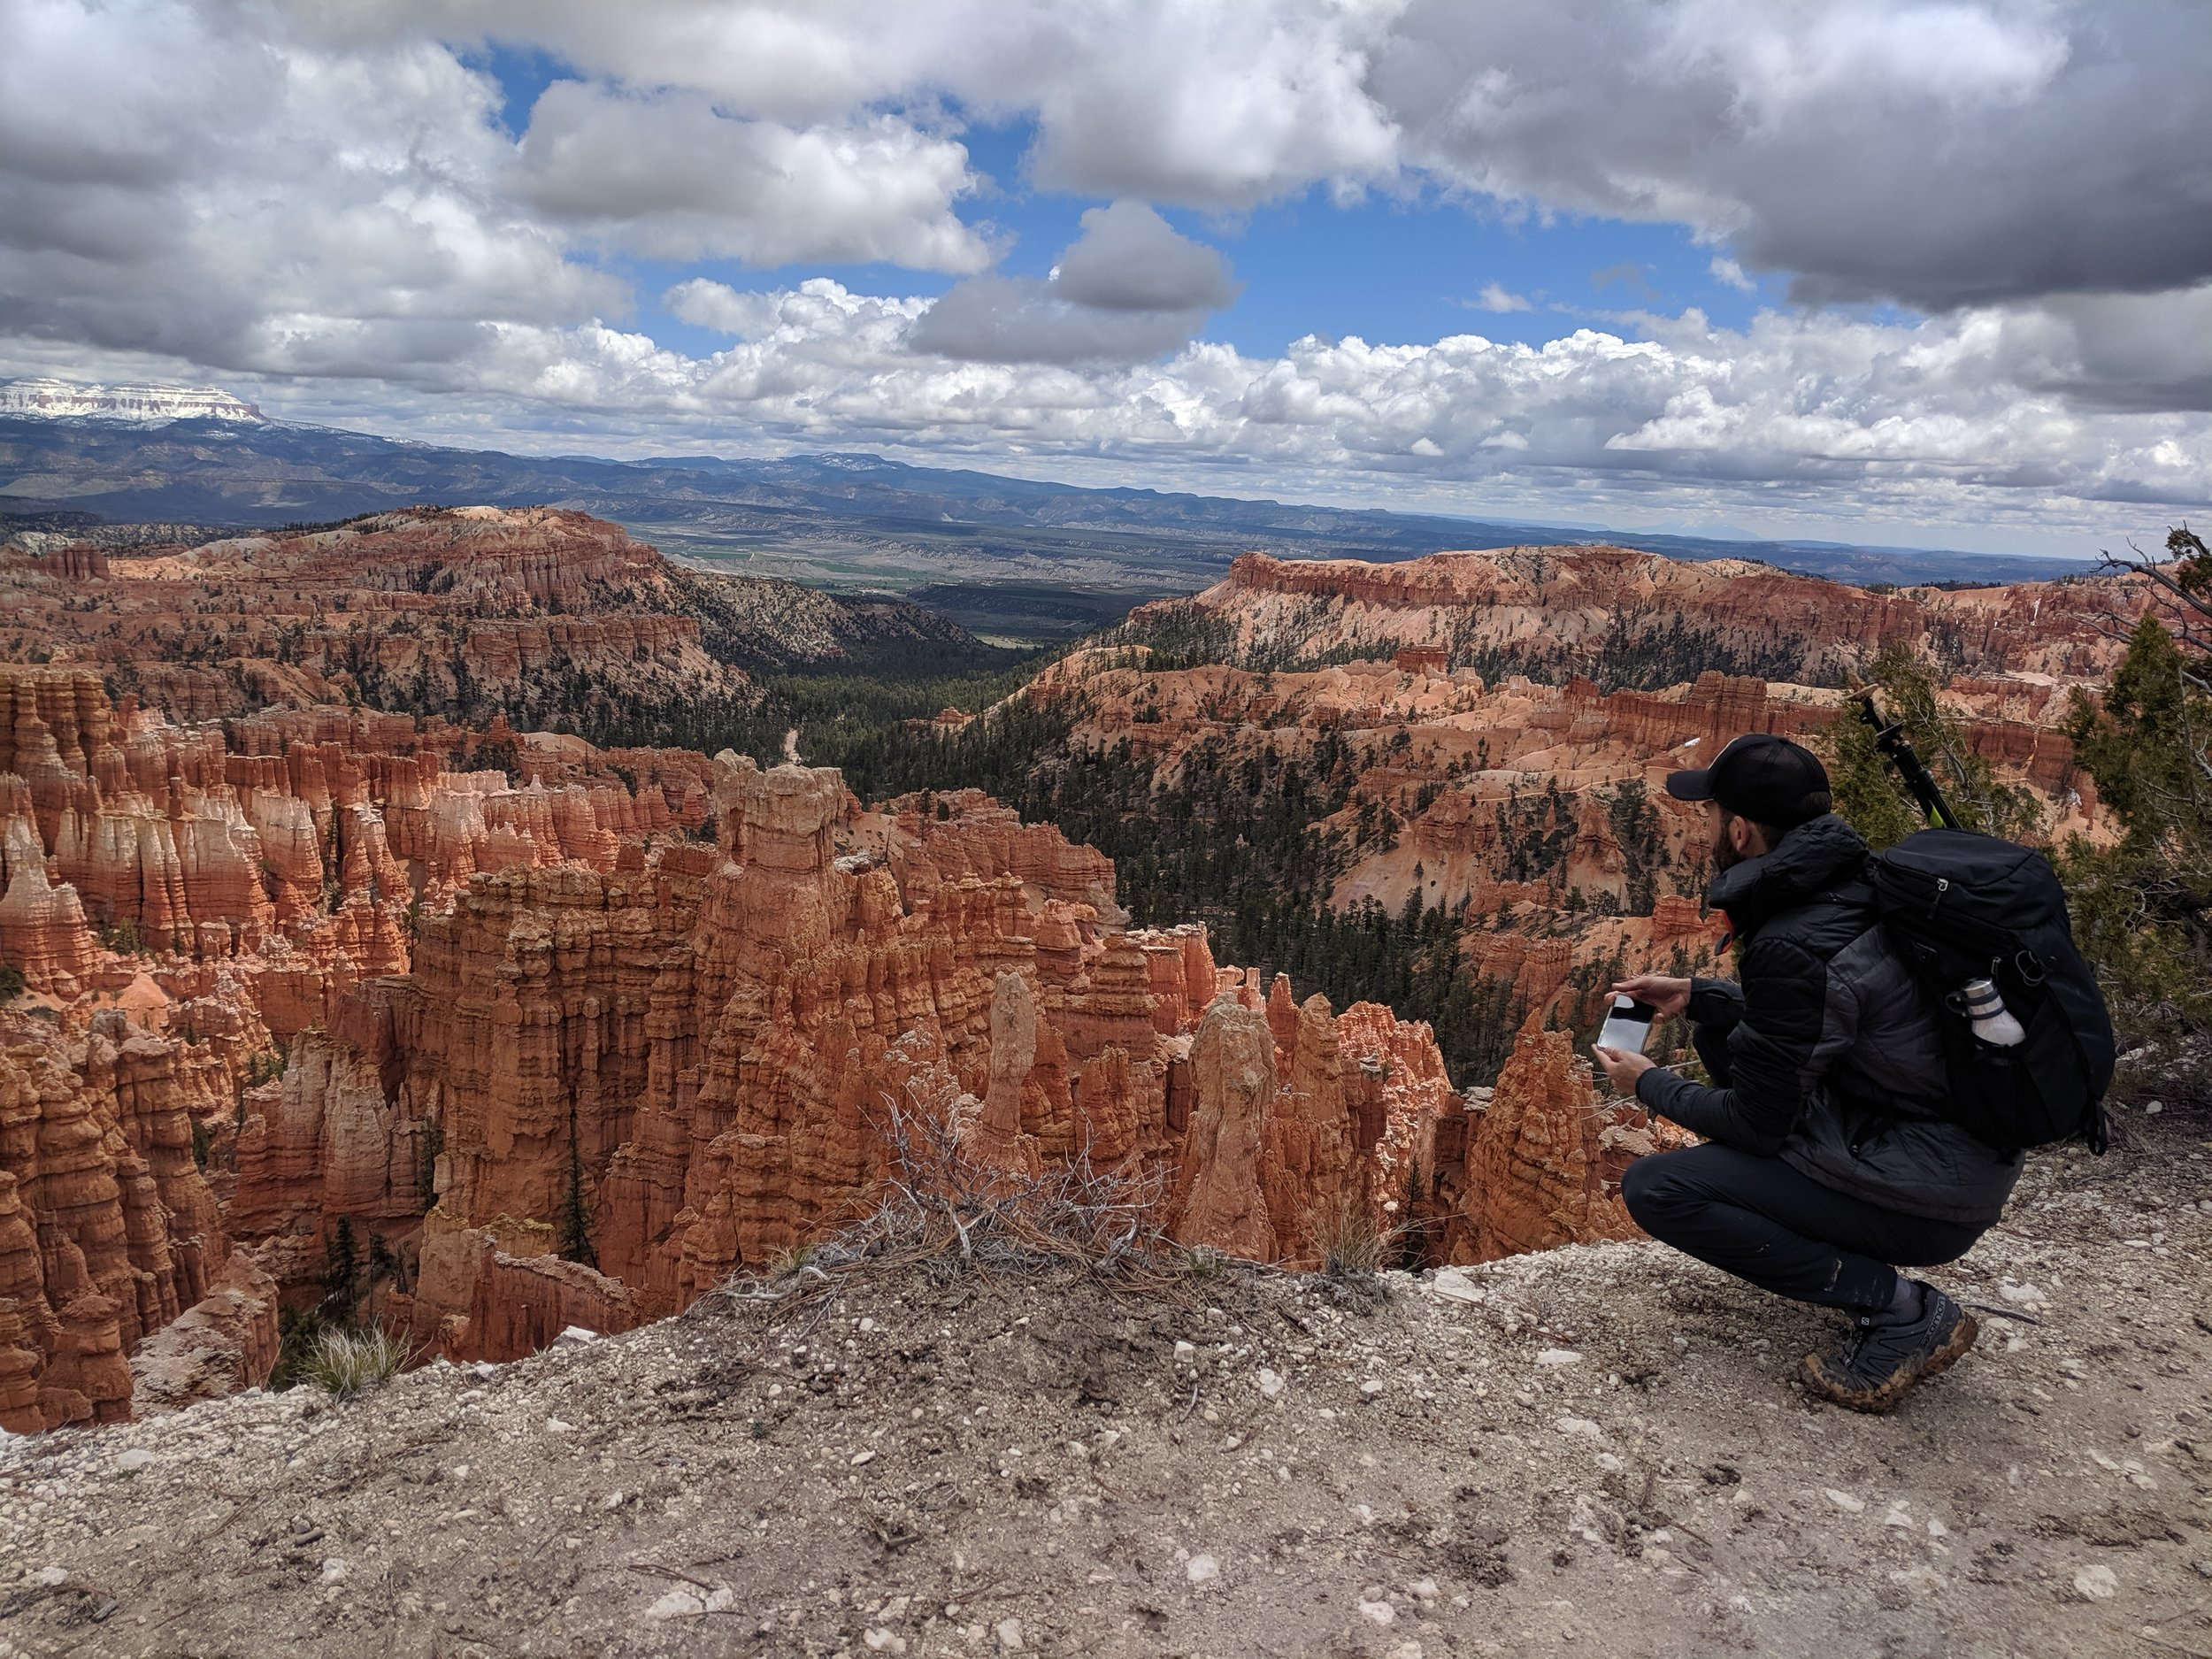 View of the hoodoos on the Rim Trail